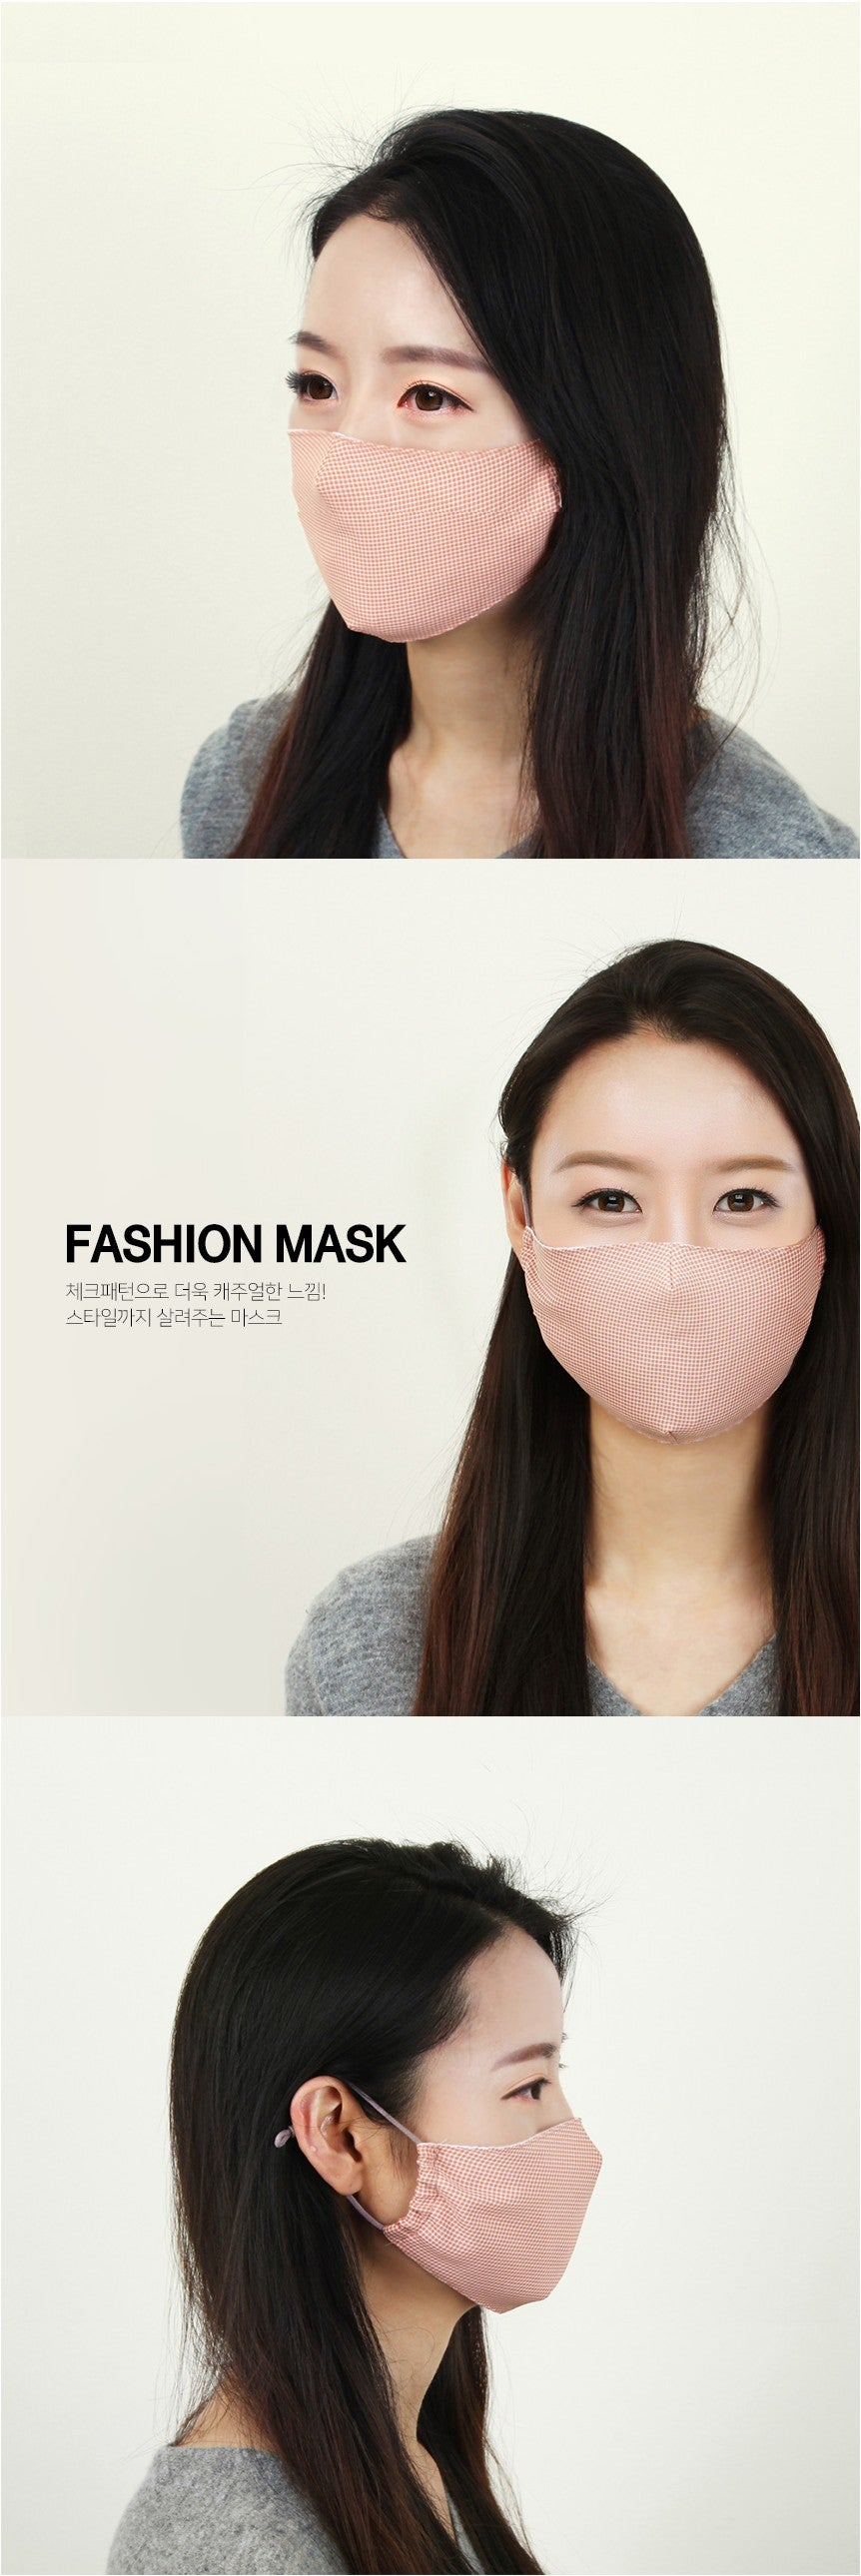 Double Layered Cotton Face Mask - Plaid Pink (Reusable)